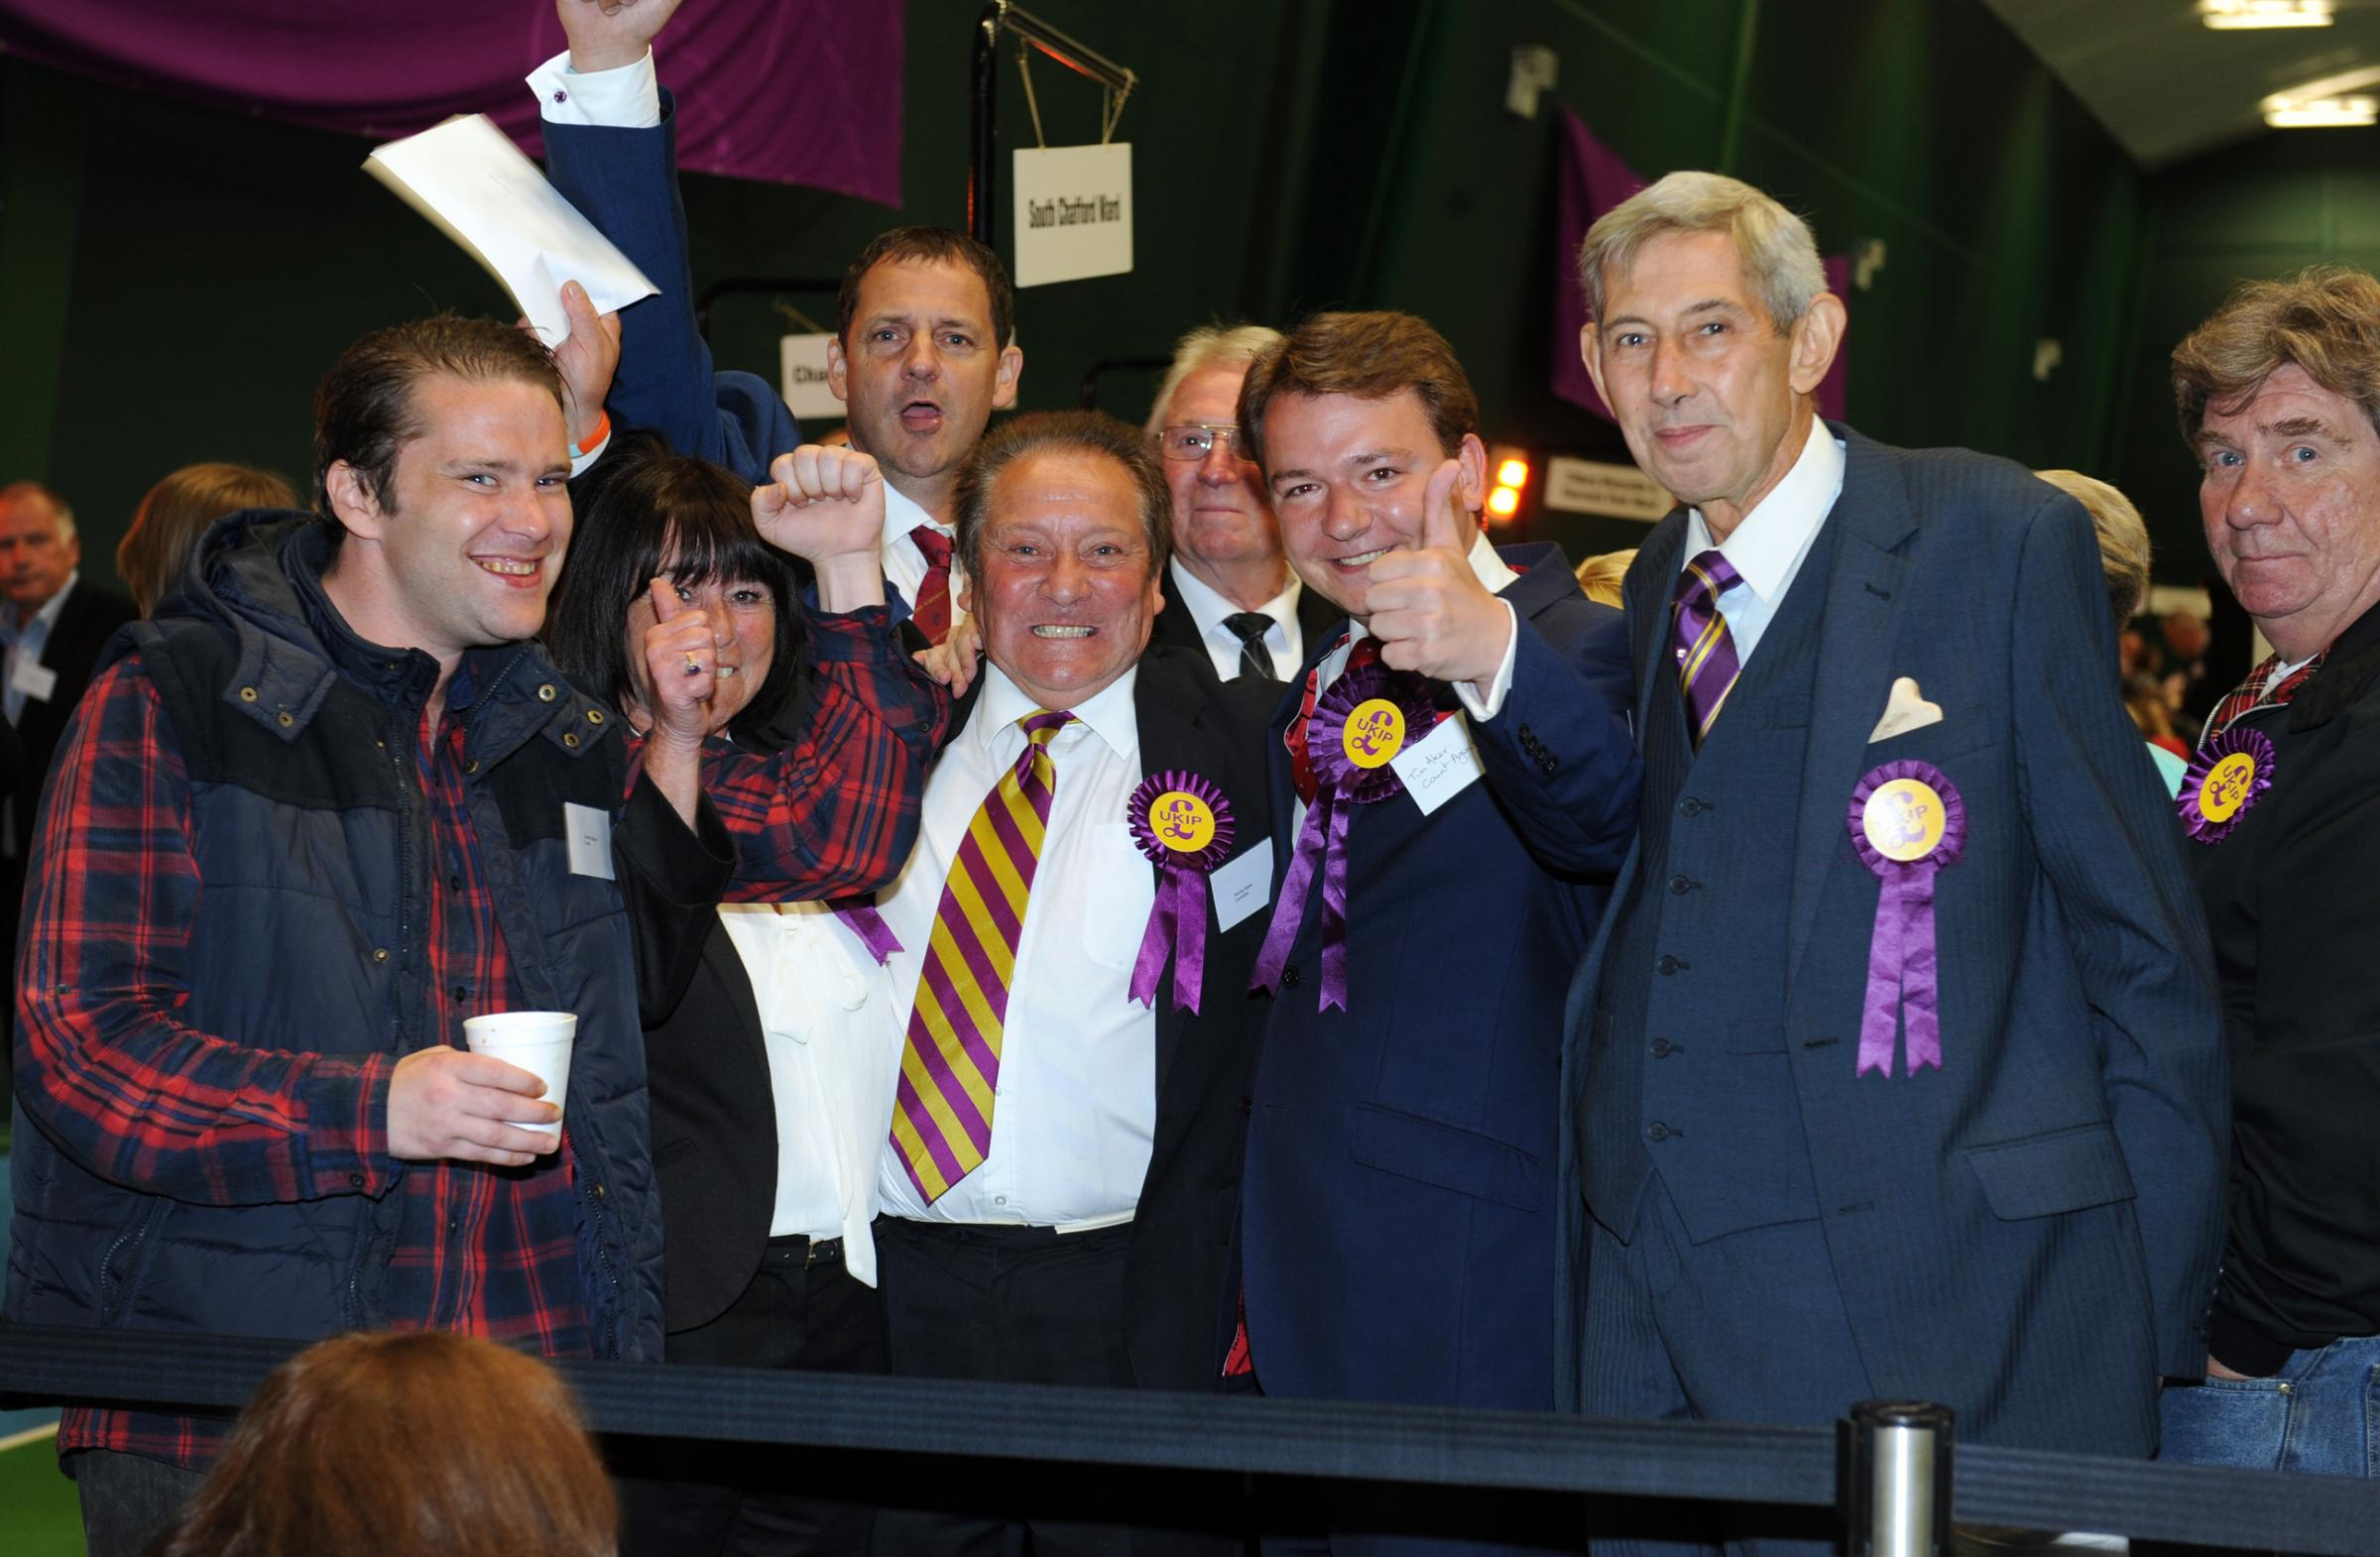 UKIP celebrate Chris Baker's win in Belhus - it turned out to be a good night for the party in Thurrock